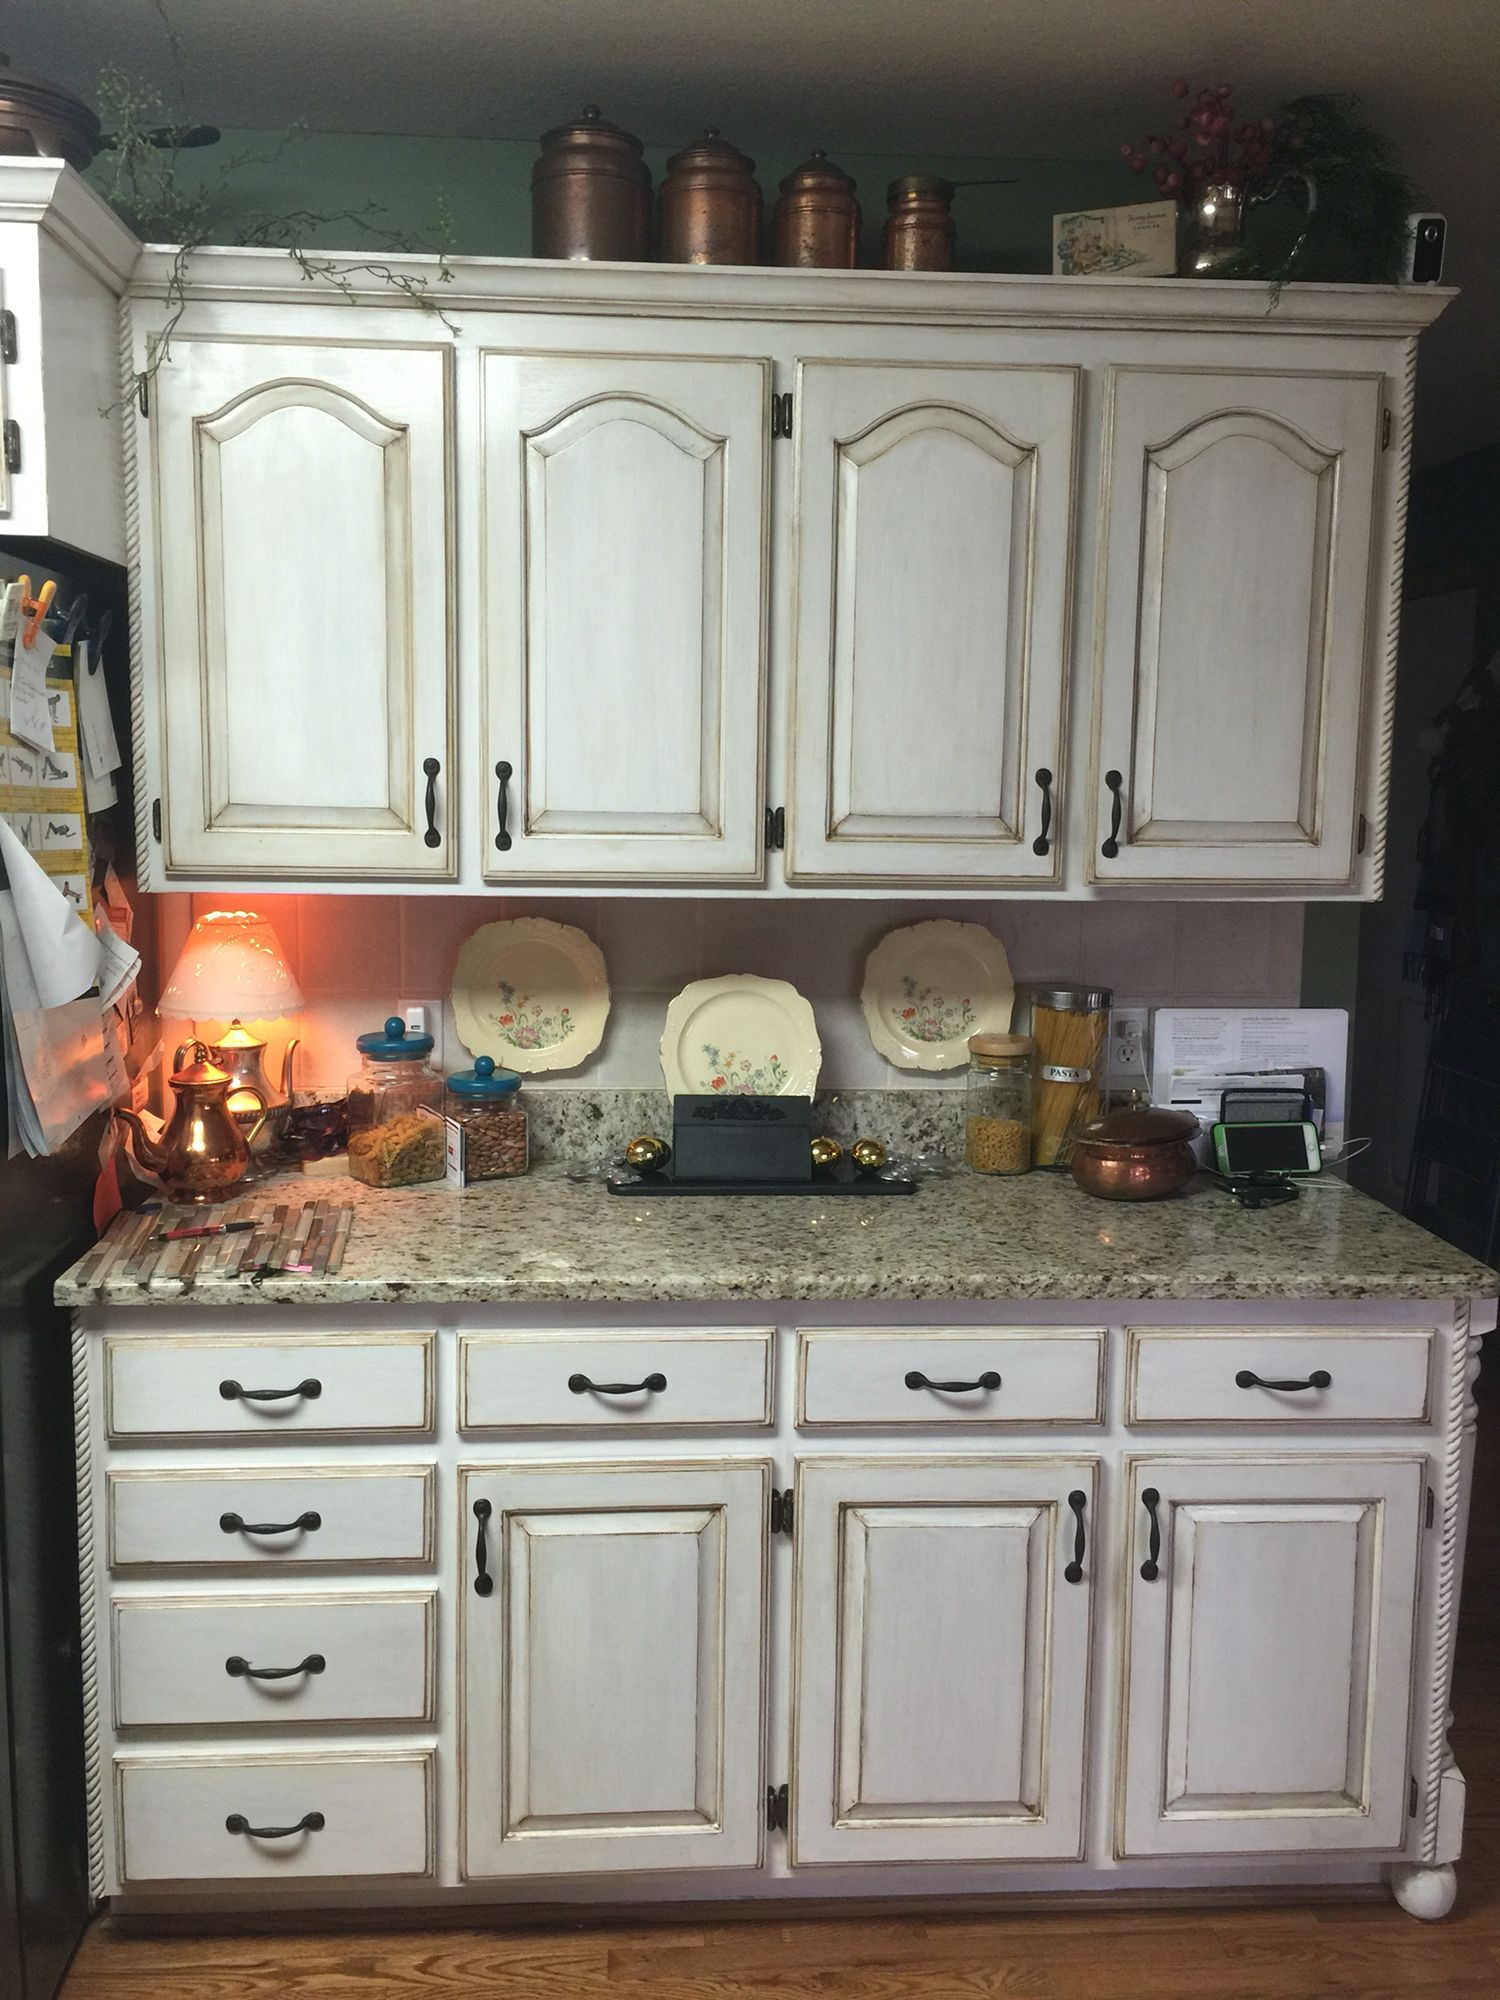 In Expensive Kitchen Cabinet Remodel In Progress White Chalk Paint Brown Antiquing Stain A Kitchen Cabinet Remodel Cabinet Remodel Painting Kitchen Cabinets